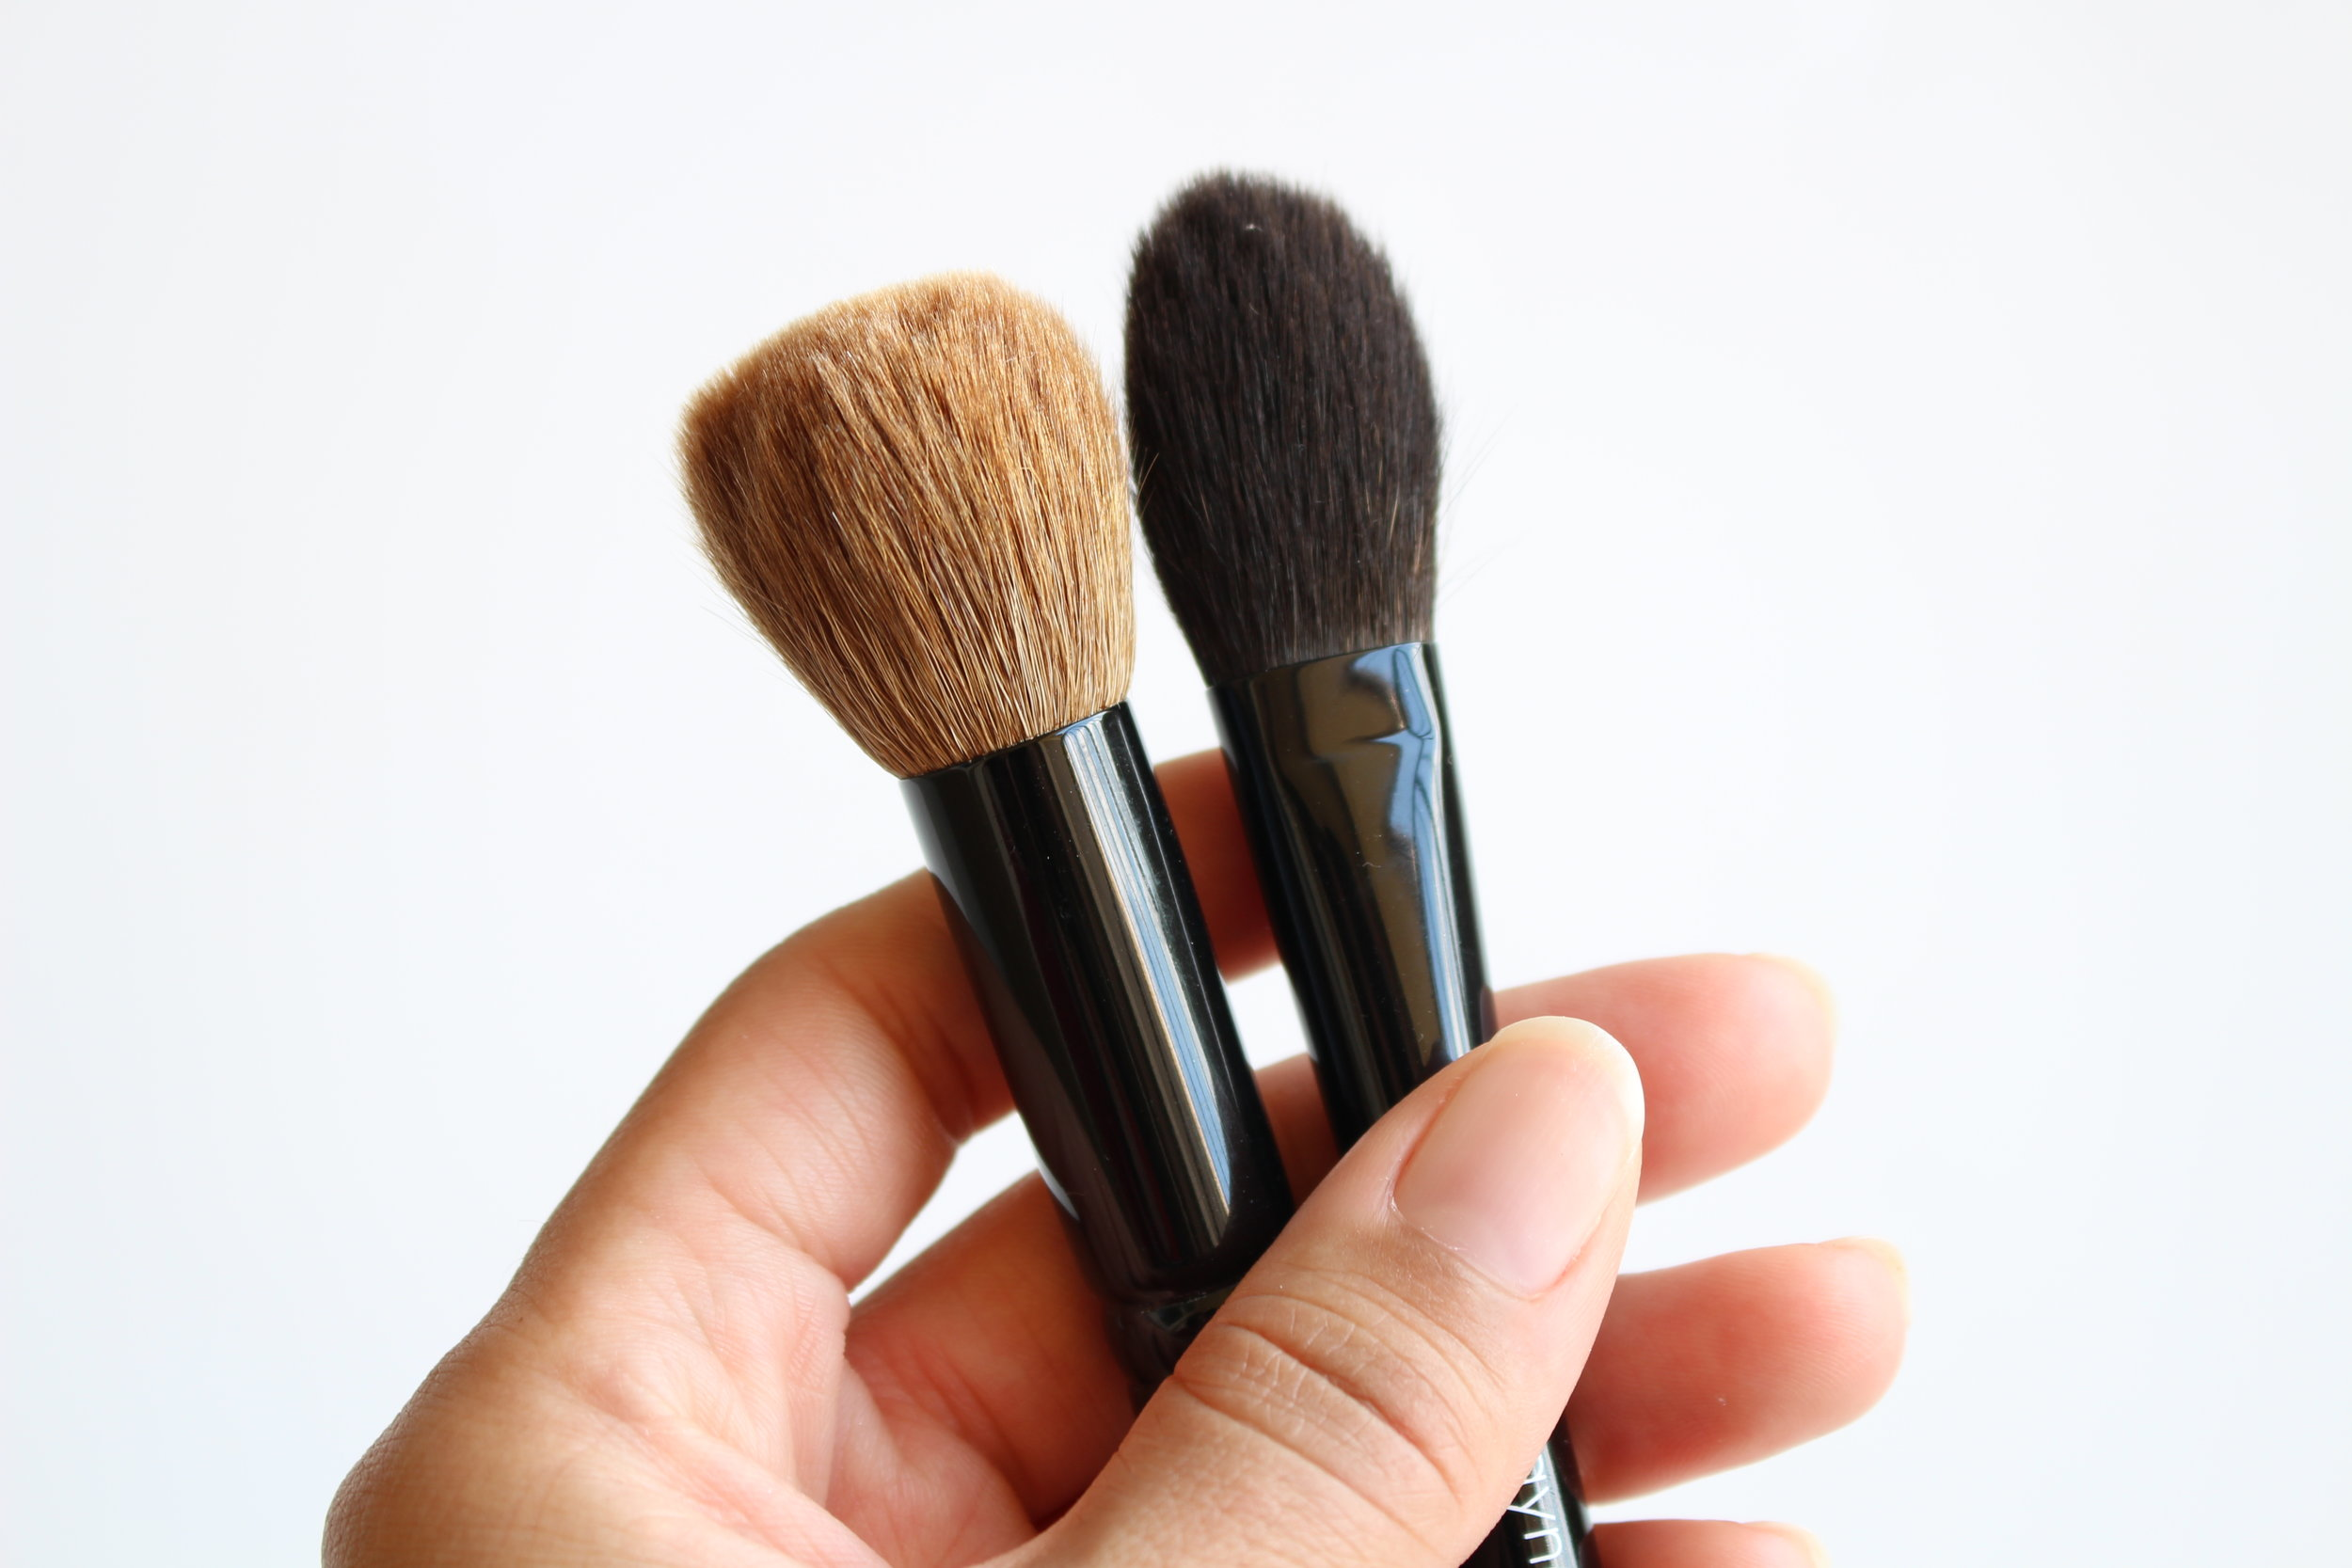 Two of my holy grail brushes: A Wayne Goss #13 and a Wayne Goss Air Brush